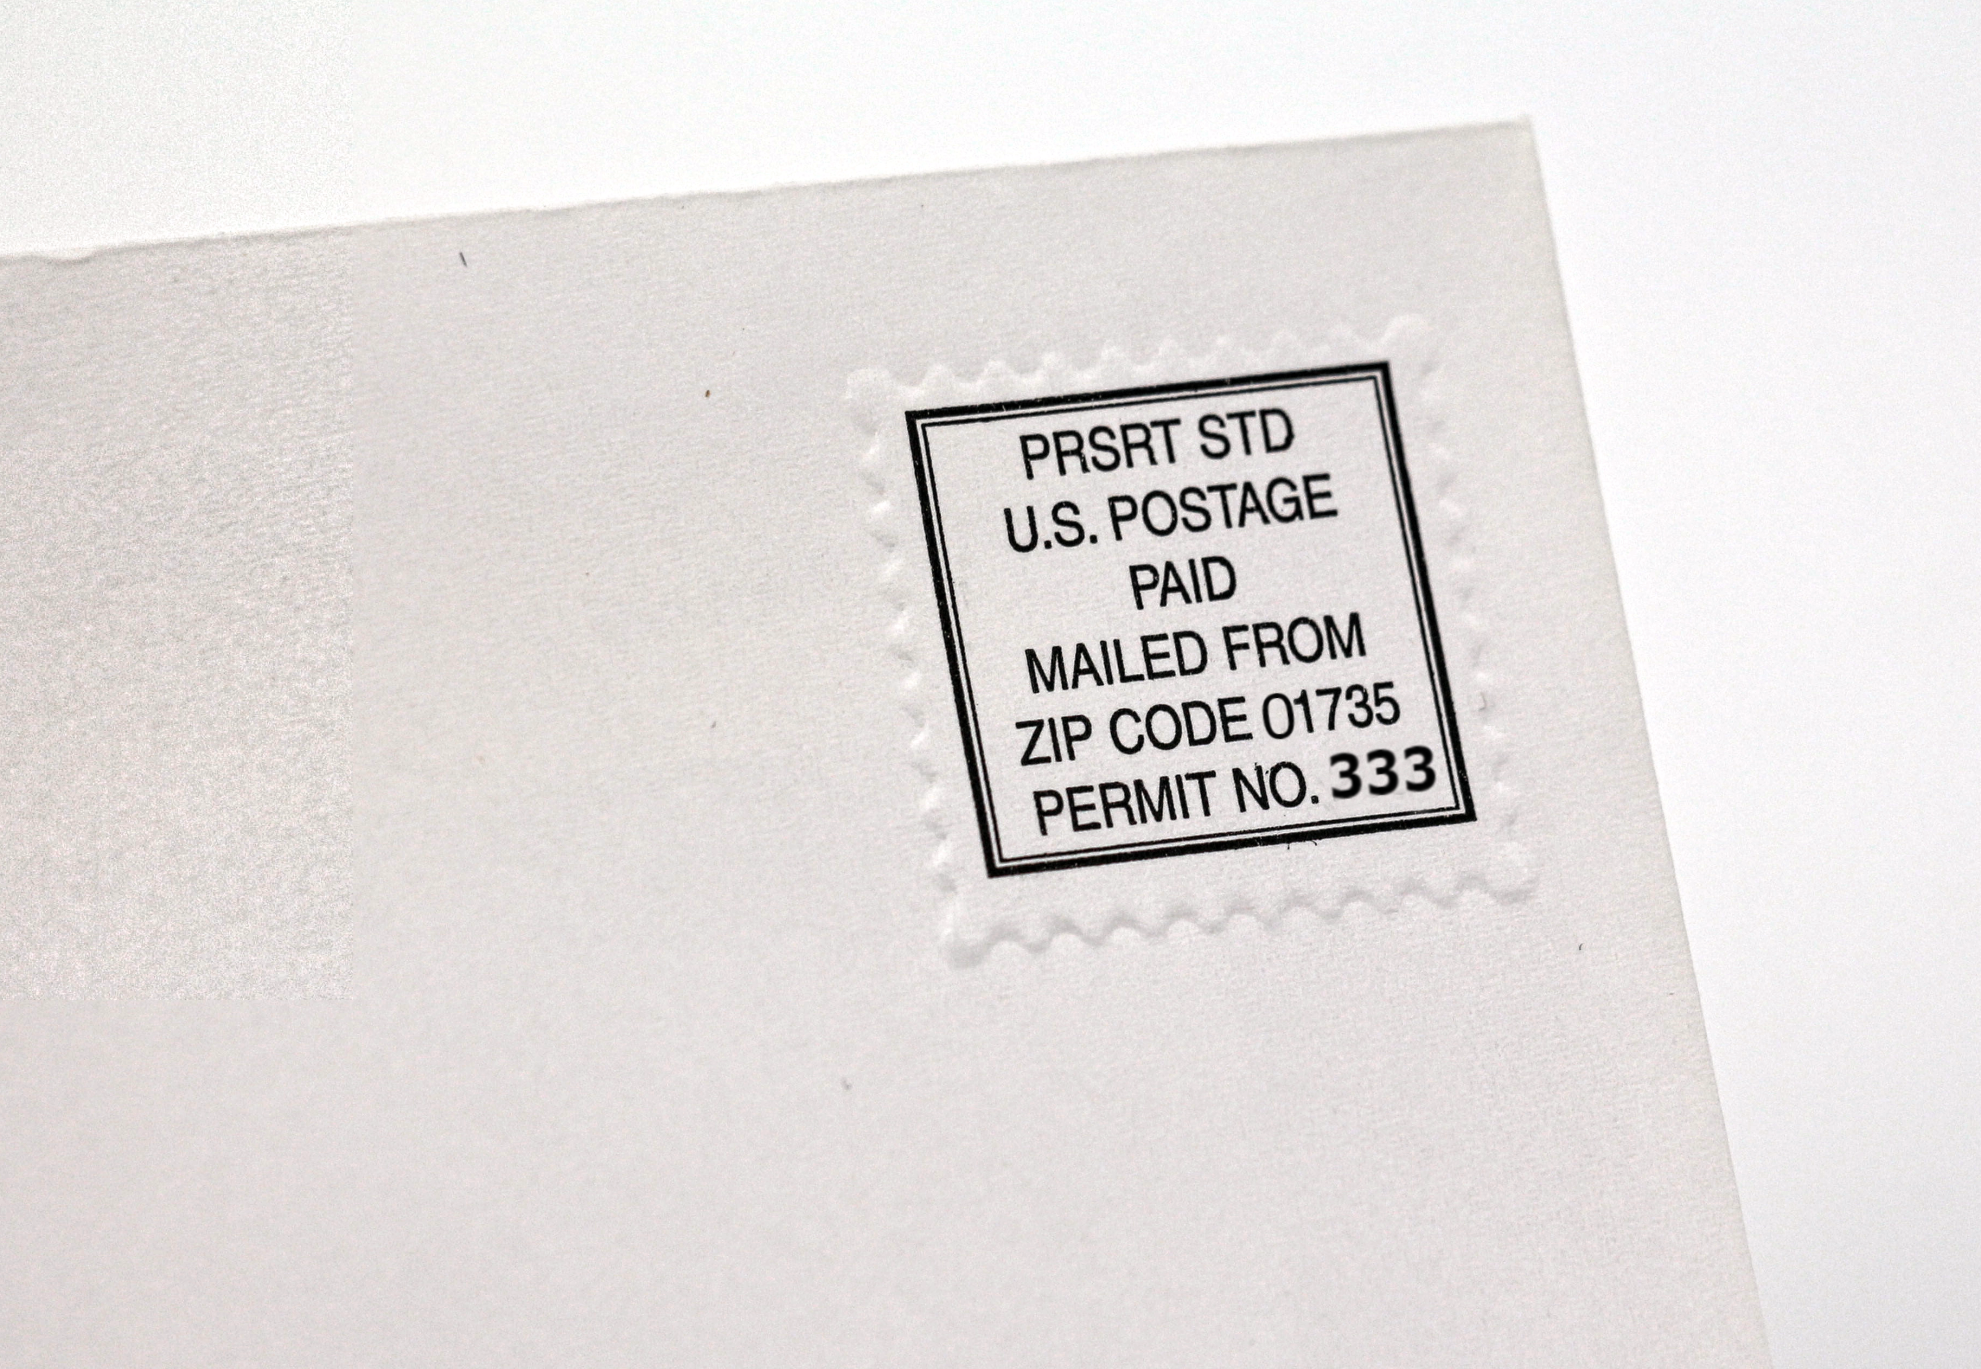 An embossed indicia increases hot spot appeal. Or, impress the reader with spot embossing like your company logo.